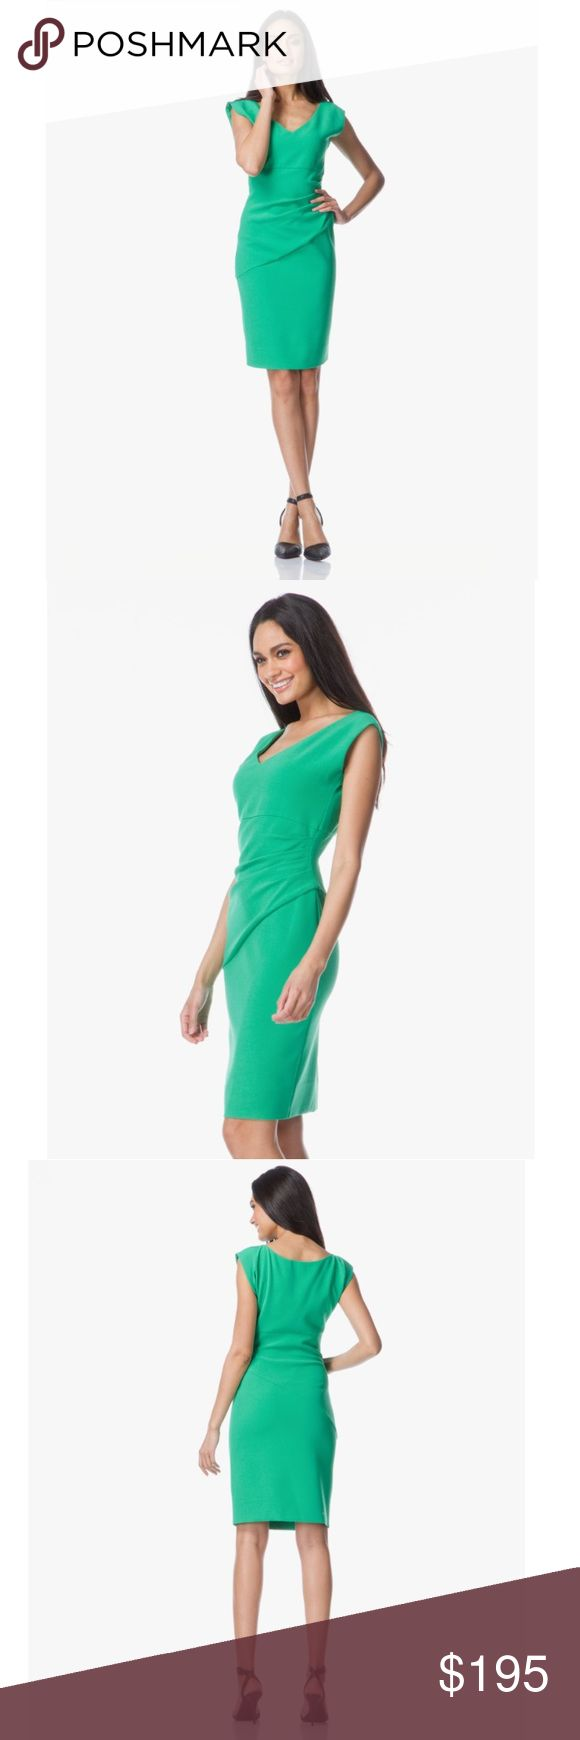 DIANE VON FURSTENBERG • BEVIN • SHEATH DRESS Sz 2 DVF!!! Eye-catching, SOLD OUT, Kelly green BEVIN sheath dress from Diane von Furstenberg. Silhouette-skimming w/ side touching for flattering effect; made in thick ponte jersey: new midweight modern stretch double cloth -holds form & flatters body. Brand new with tags!!! Note: color slightly more rich/ darker than in pics. - V-neck  - Short dolman sleeves  - Empire waist seam  - Pleating for beautiful draped effect  - Hidden side zip…